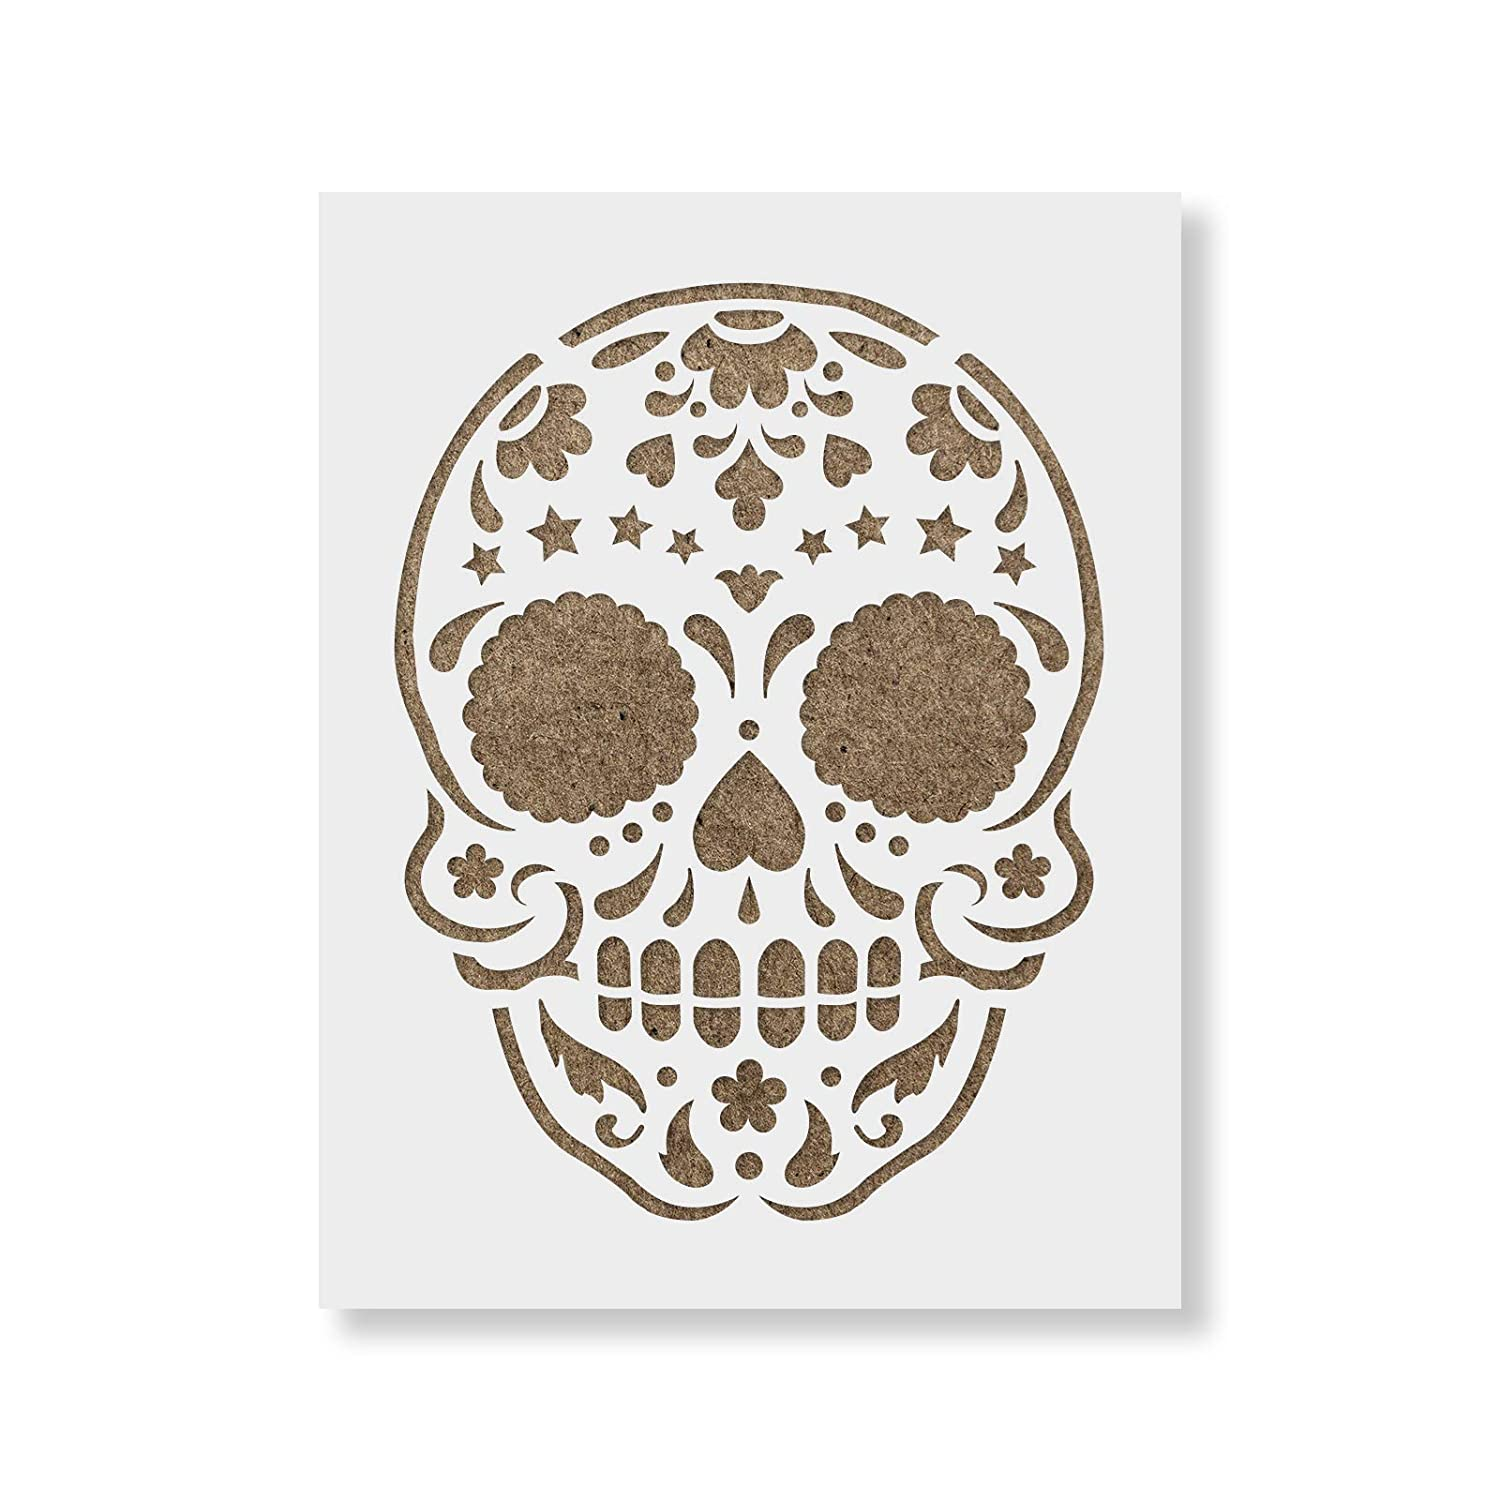 Sugar Skull Starry Stencil Template for Walls and Crafts - Reusable Stencils for Painting in Small & Large Sizes Stencil Revolution